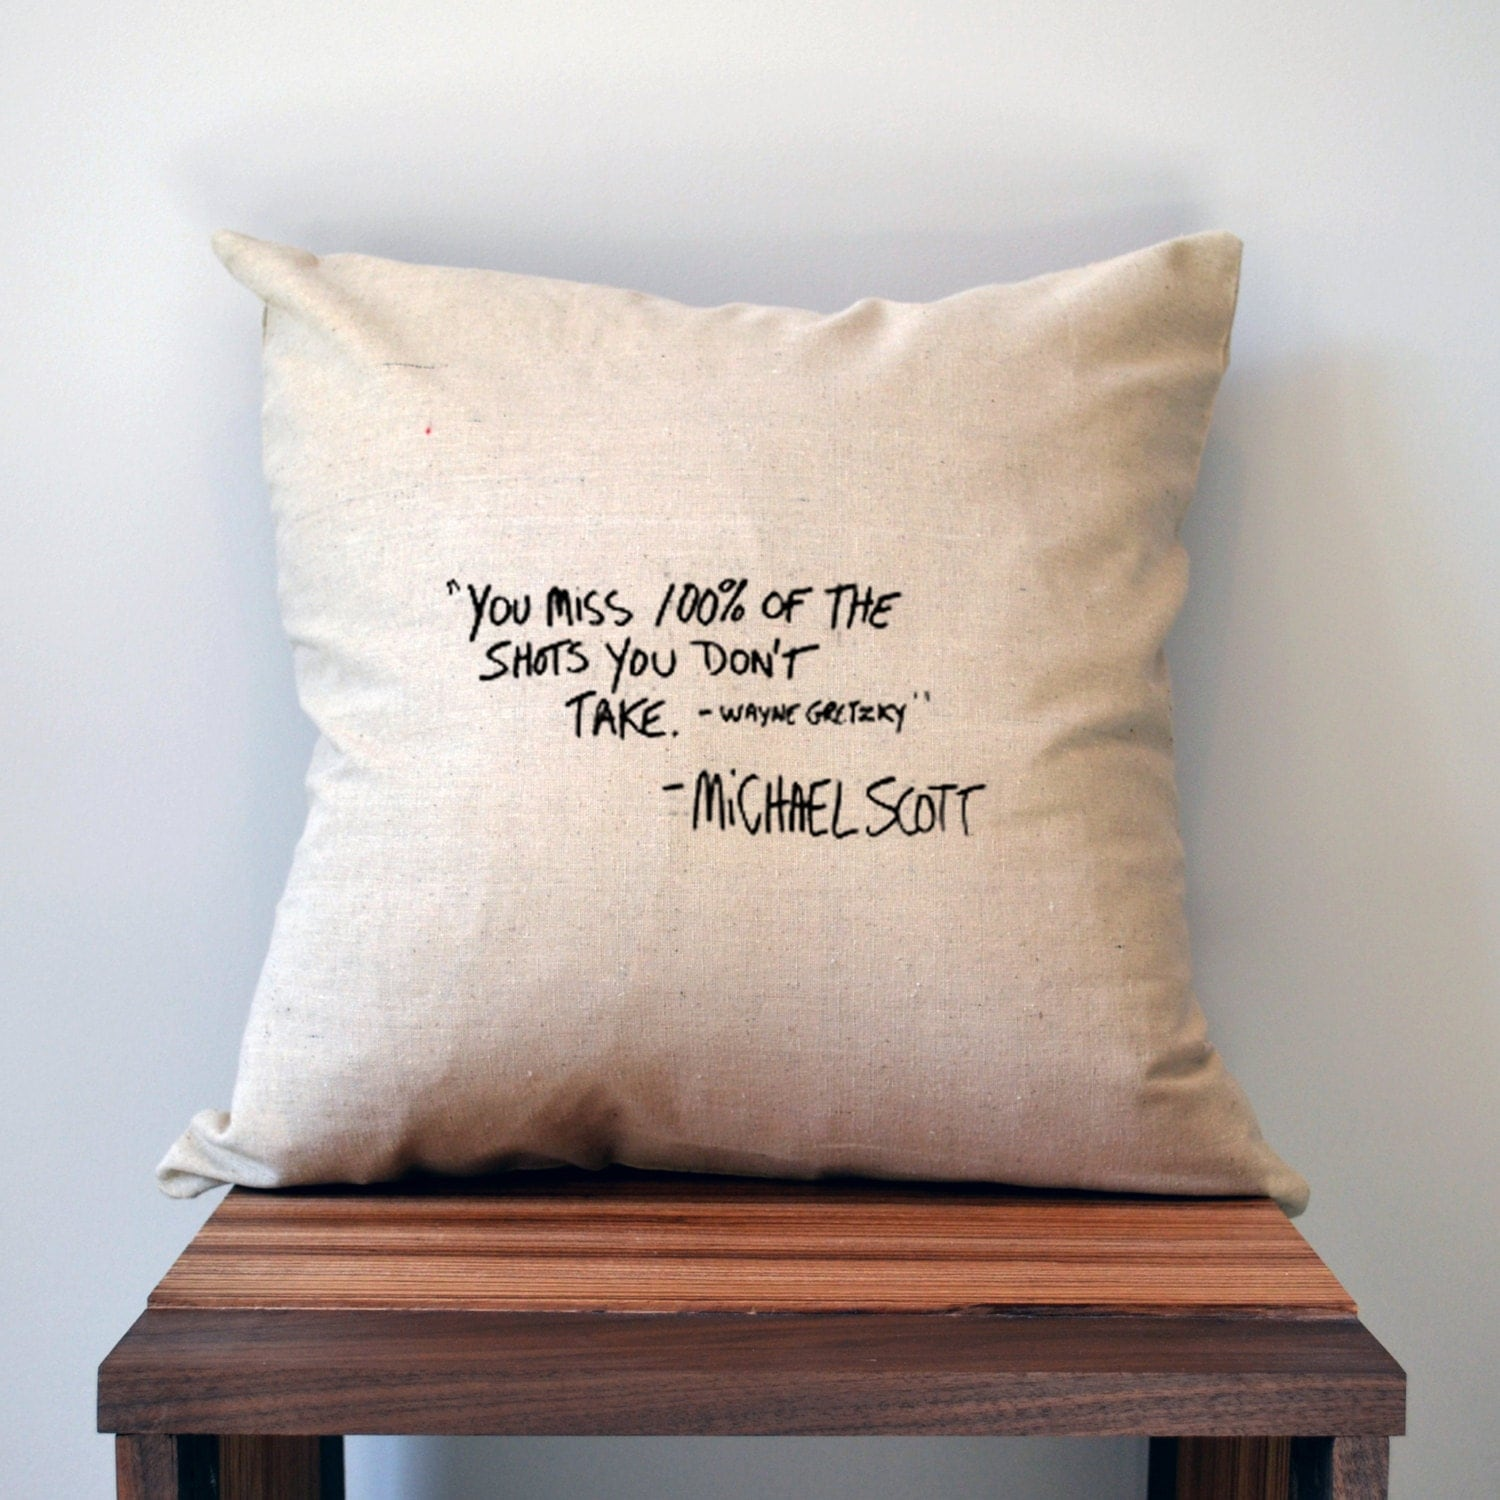 Throw Pillows With Quotes On Them : The Office Pillow Cover Michael Scott Quote Pillow Cover 18